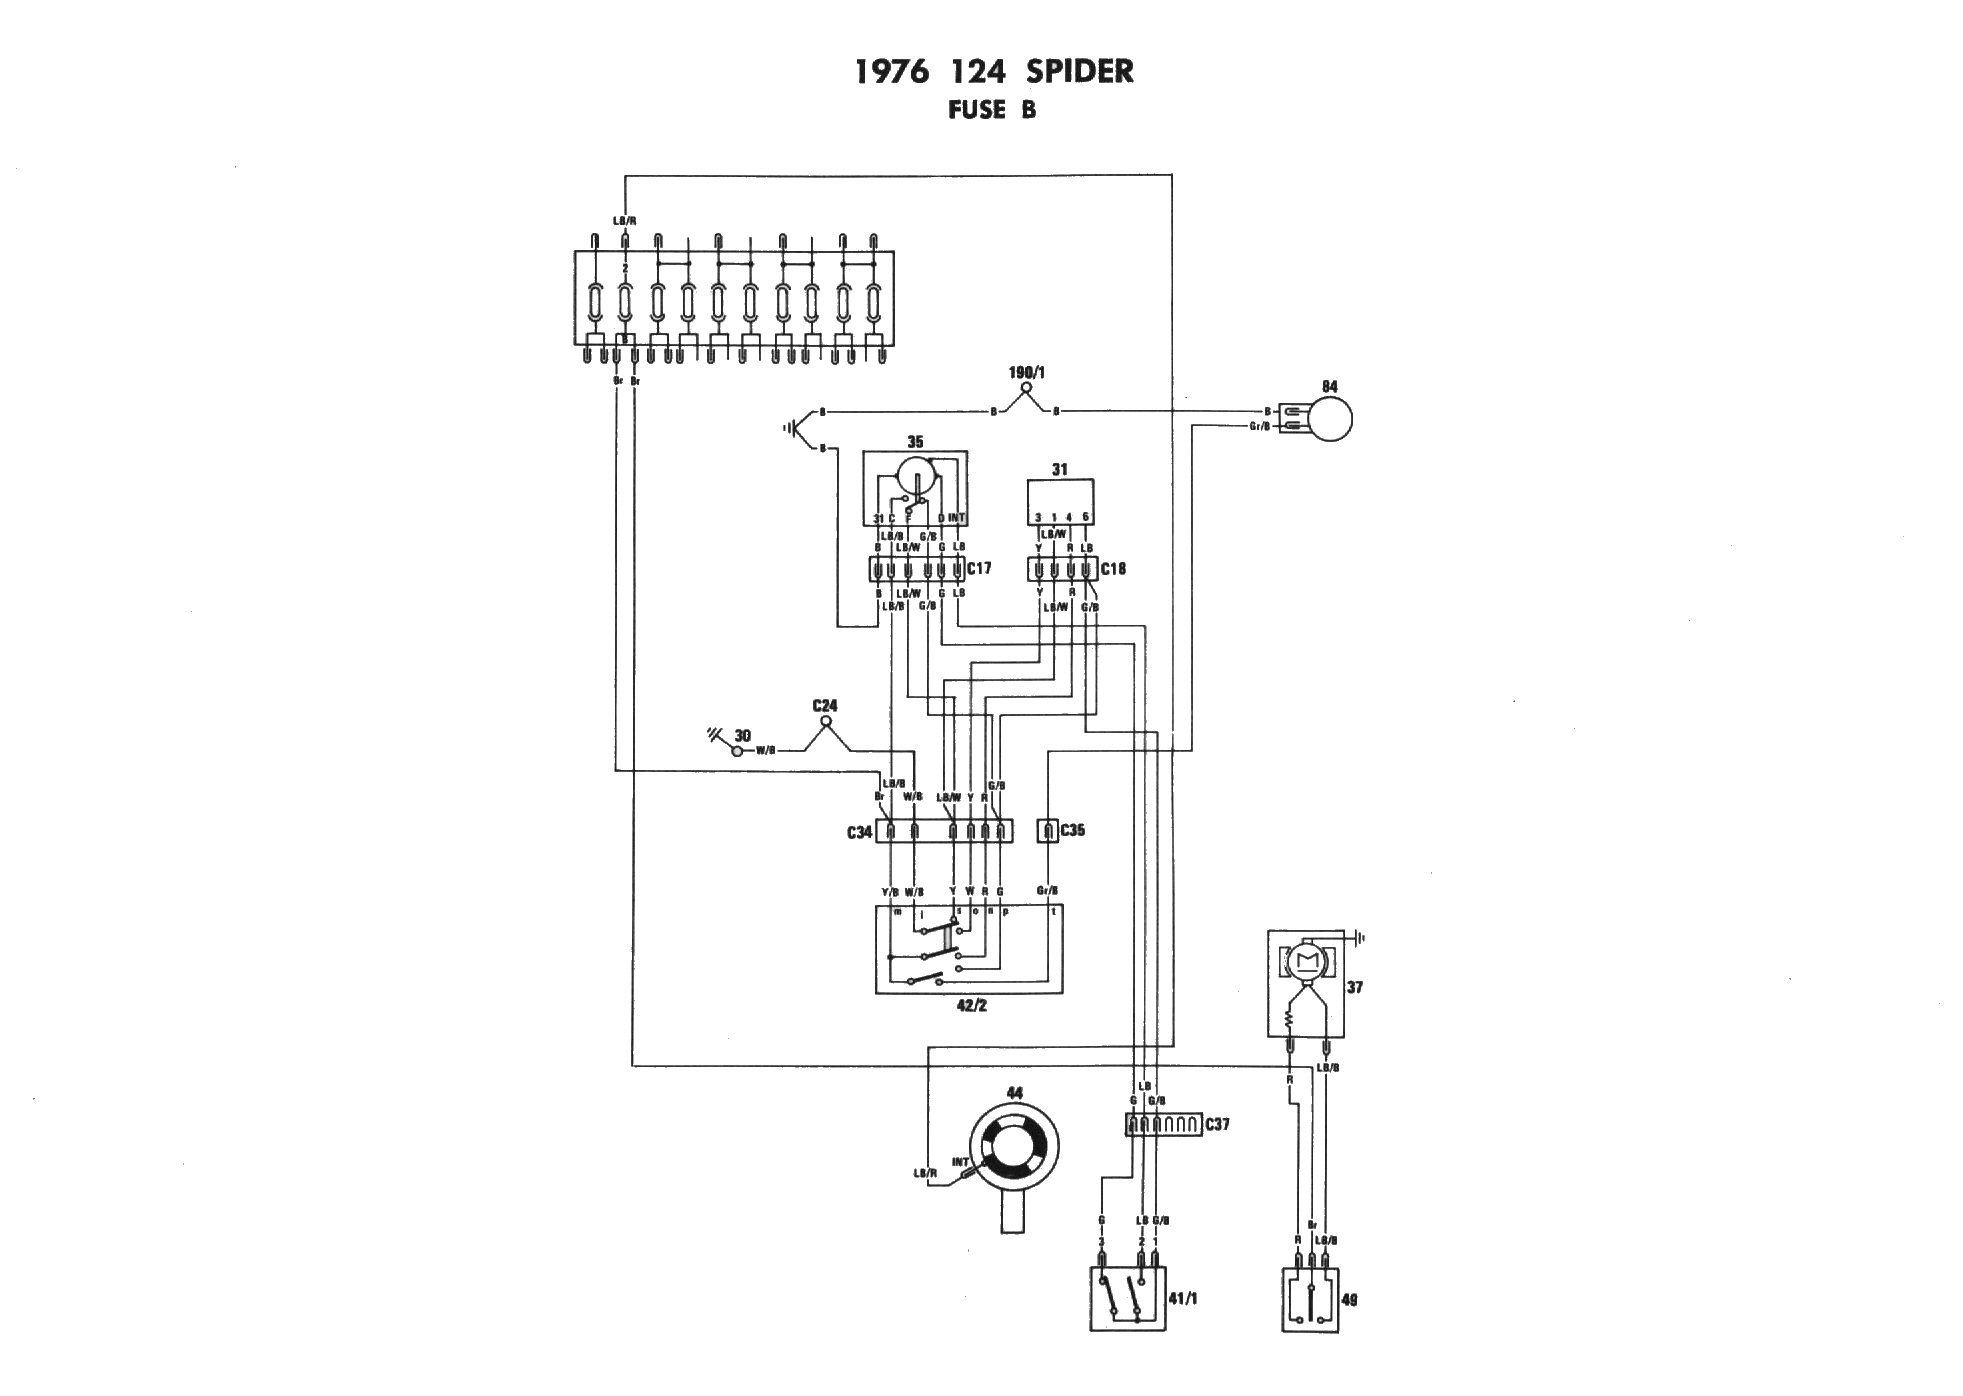 1976 Fiat 124 Spider Wiring Diagram : 35 Wiring Diagram